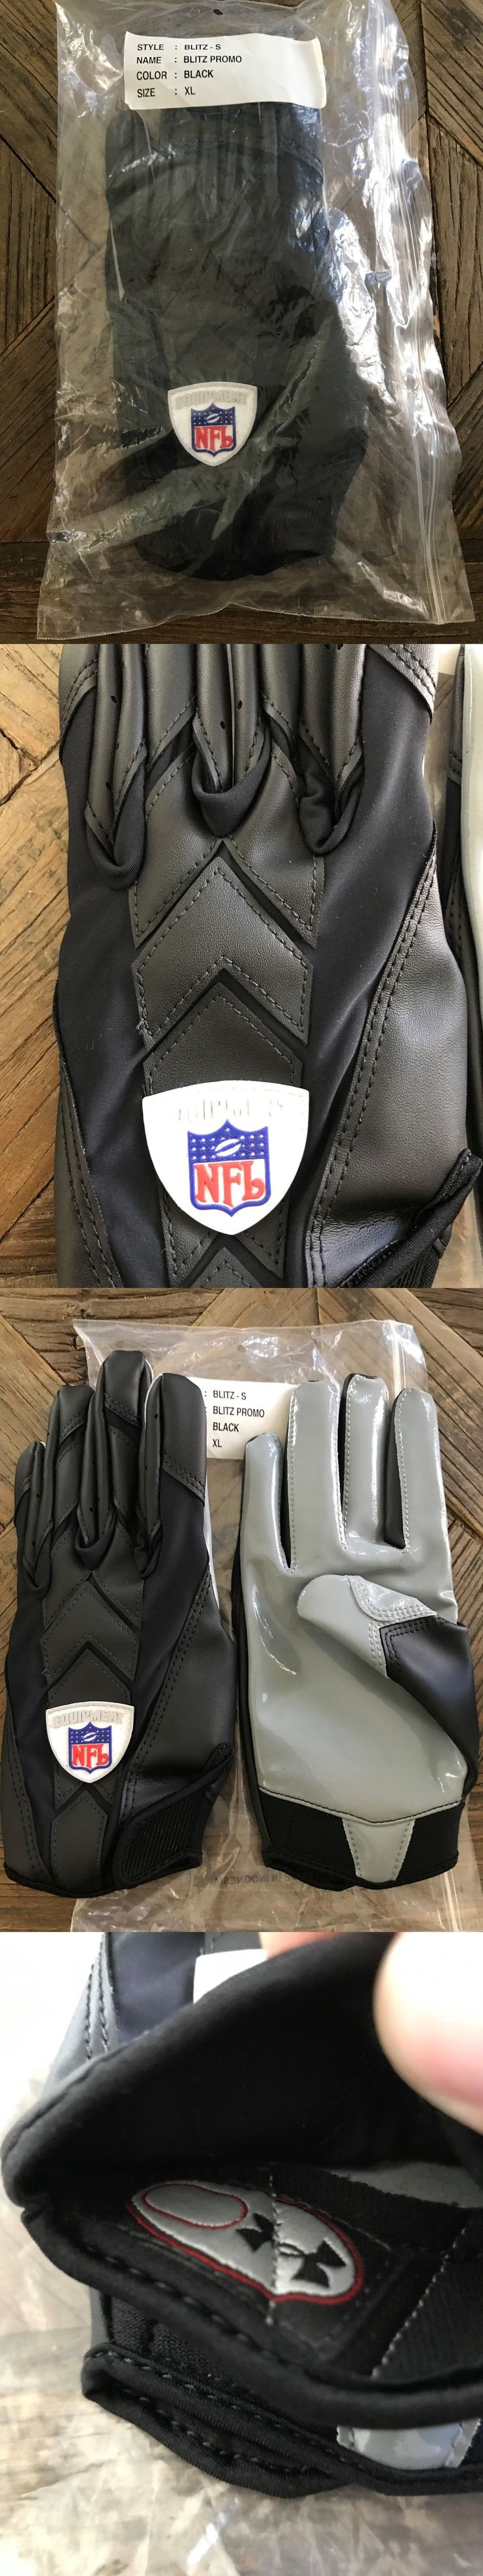 Gloves 159114: Under Armour Nfl Blitz Gloves Men - Black - Xl -> BUY IT NOW ONLY: $50 on eBay!